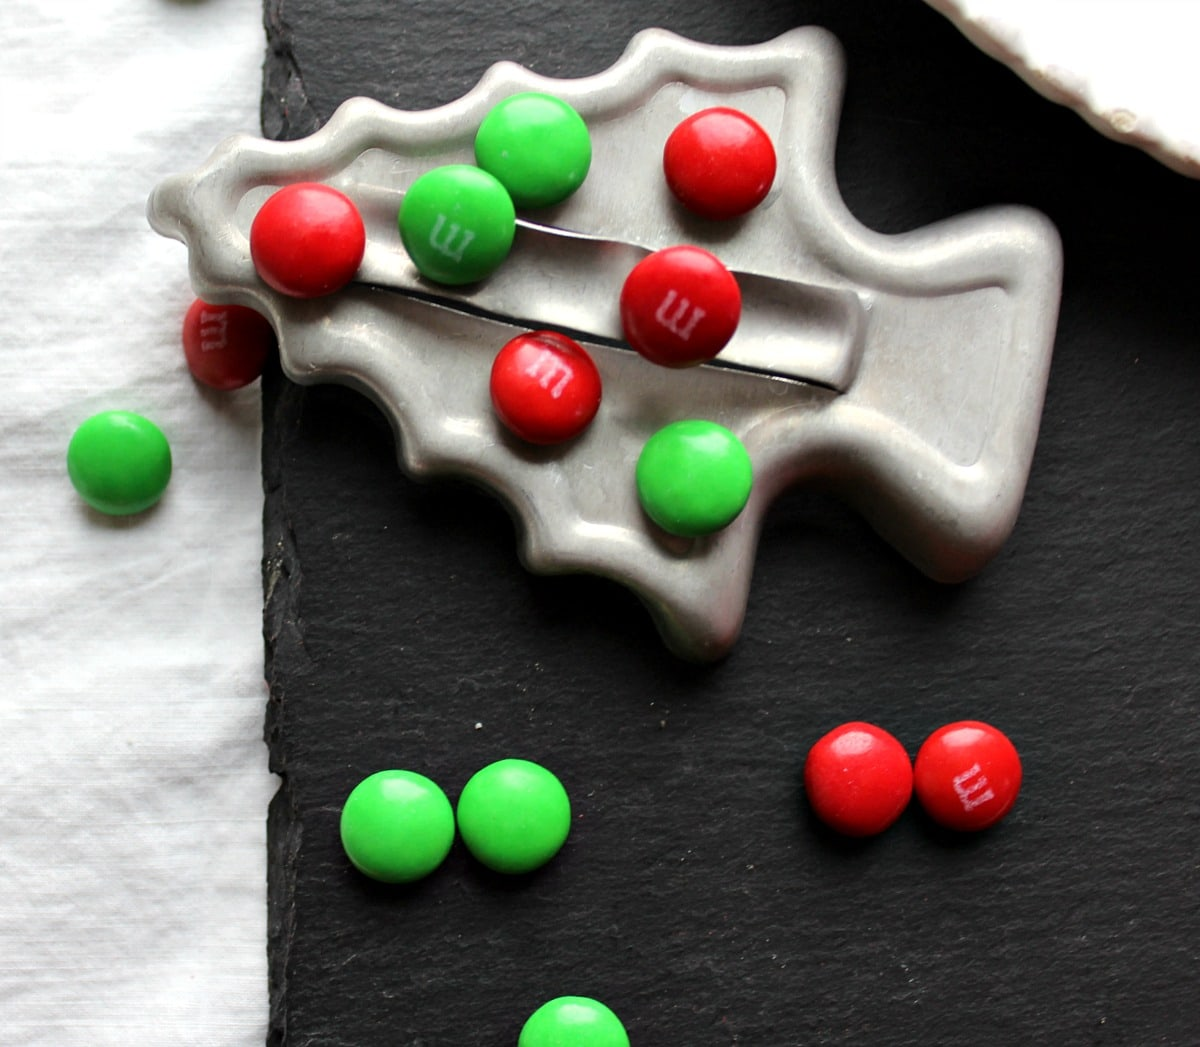 Red and green M&M's with a metal Christmas tree cookie cutter.